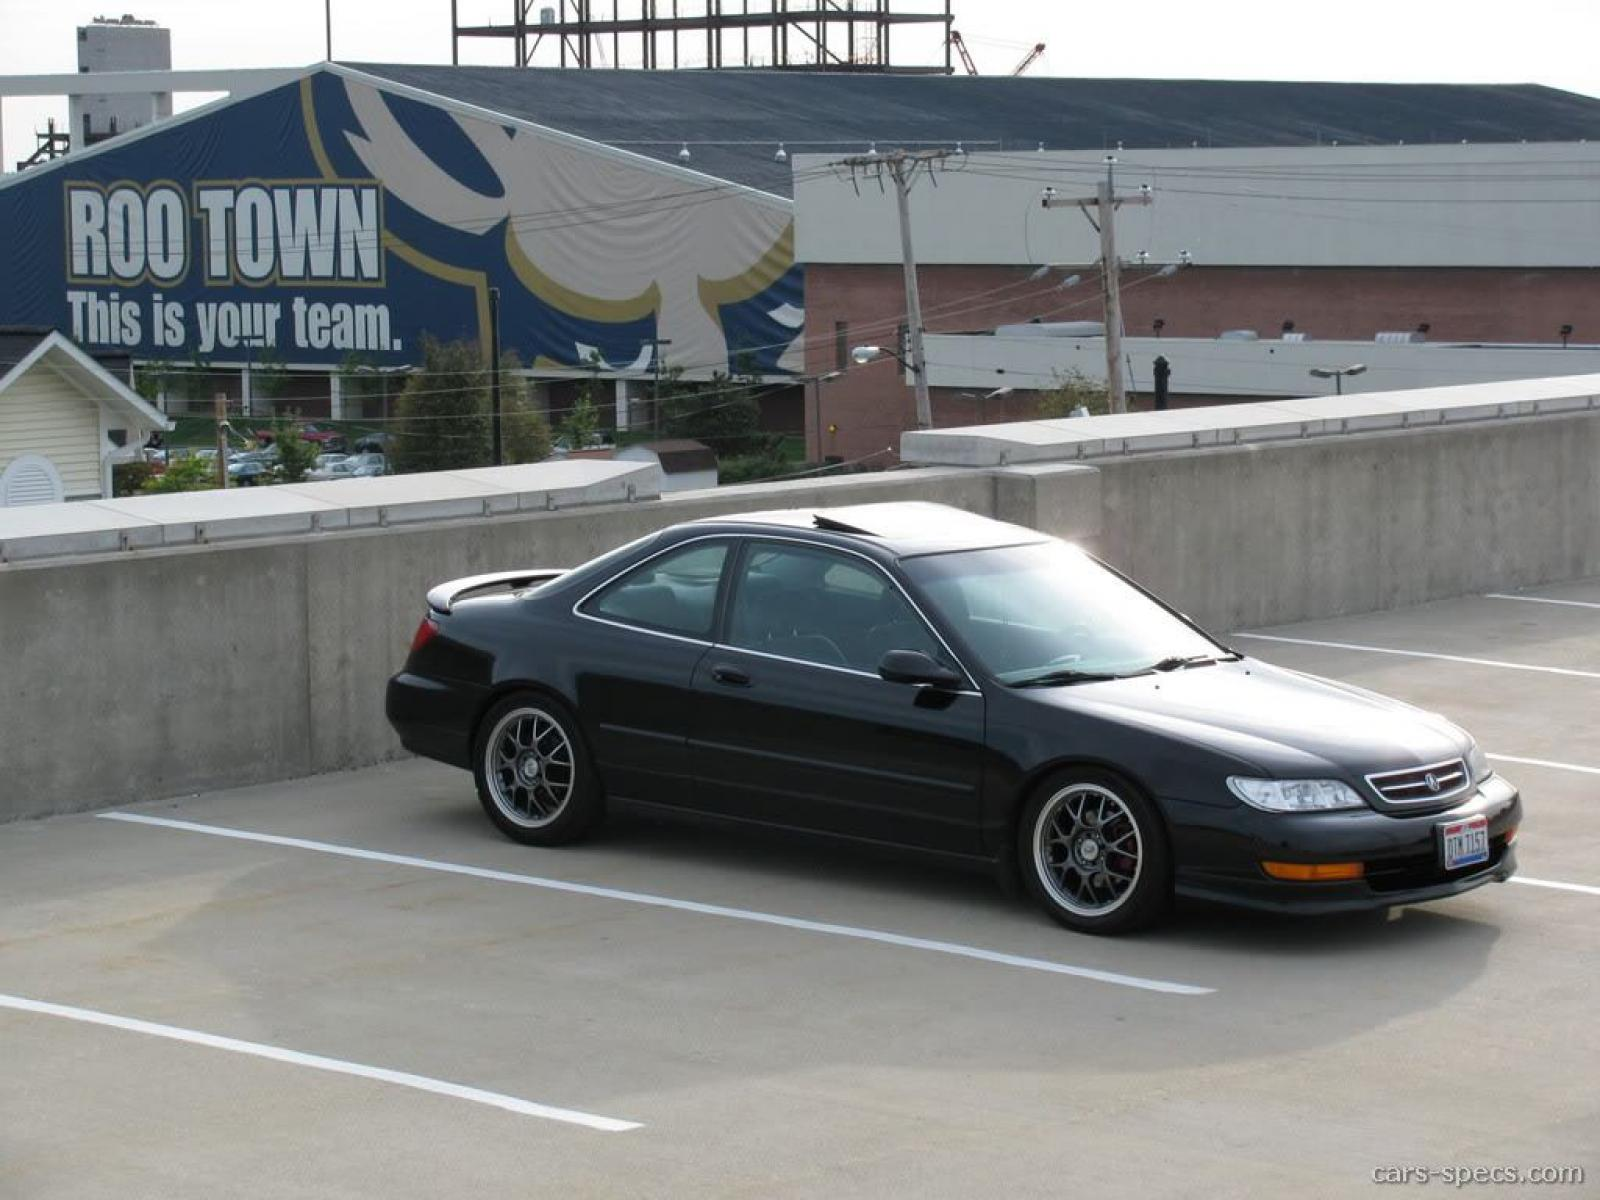 800 1024 1280 1600 origin 1997 Acura CL ...